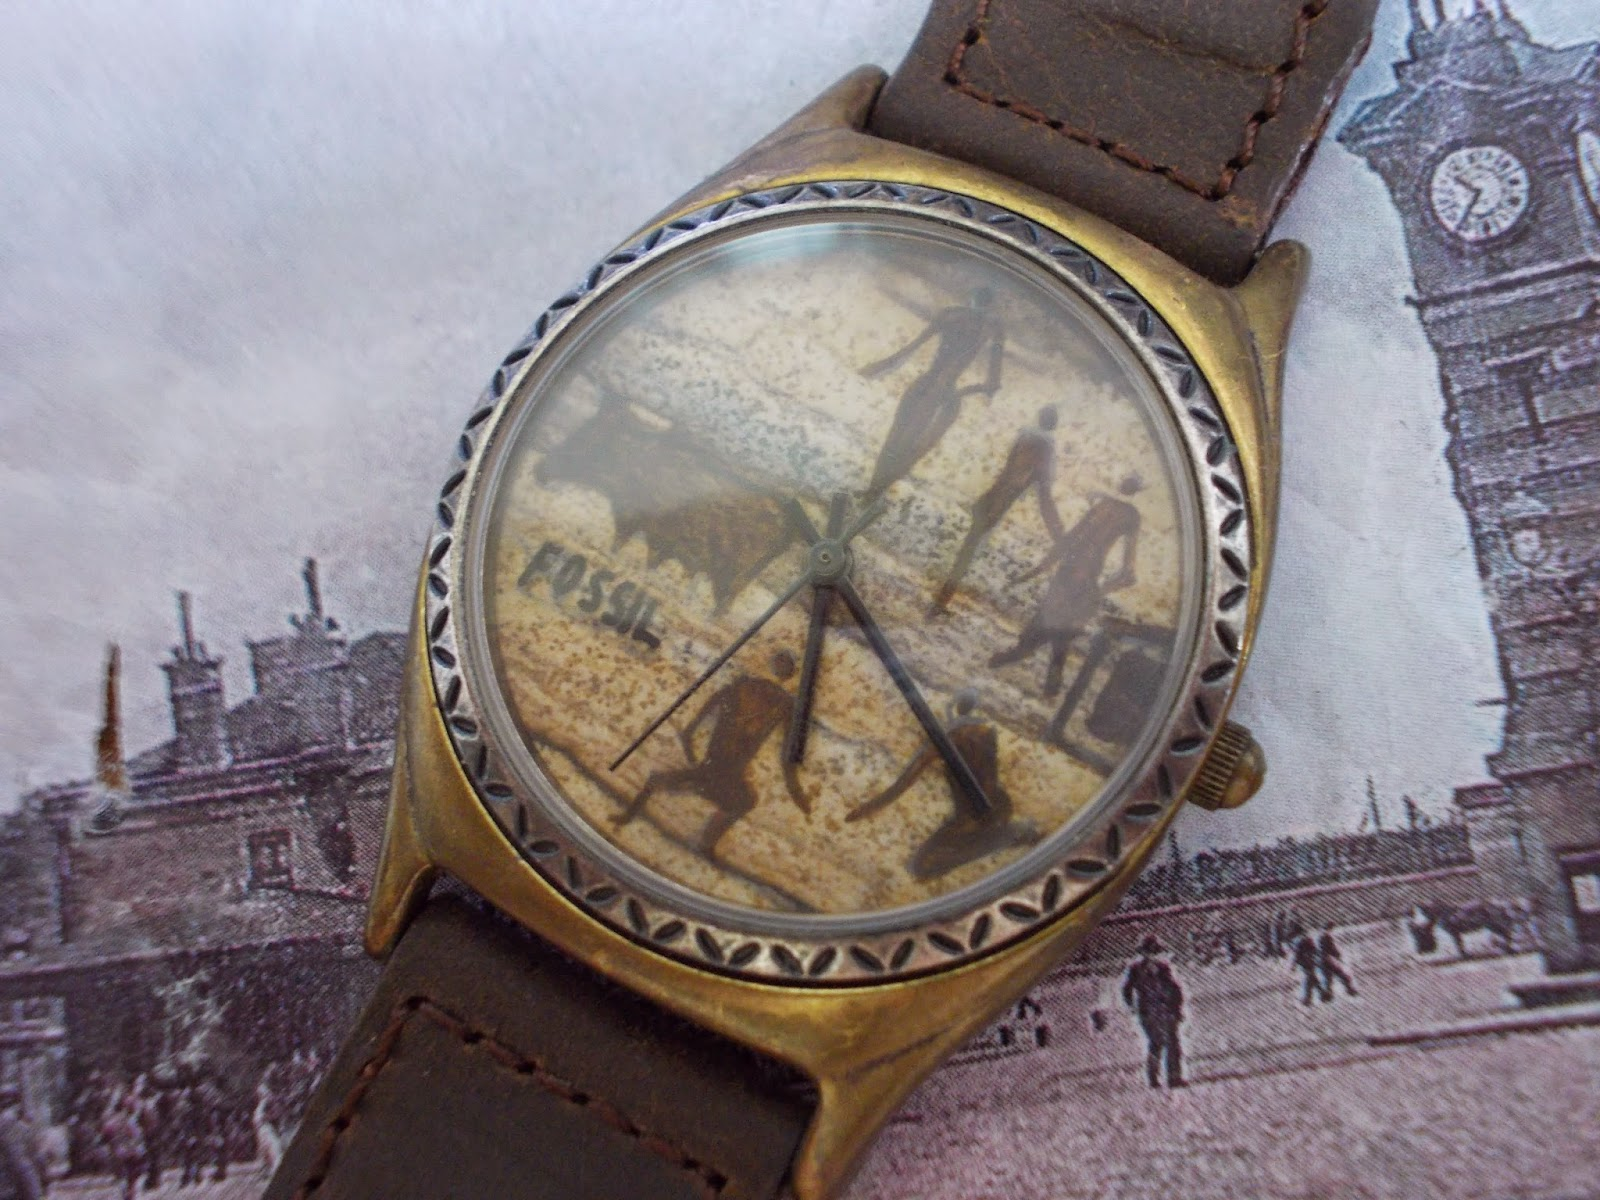 fossil vintage expedition watch eBay